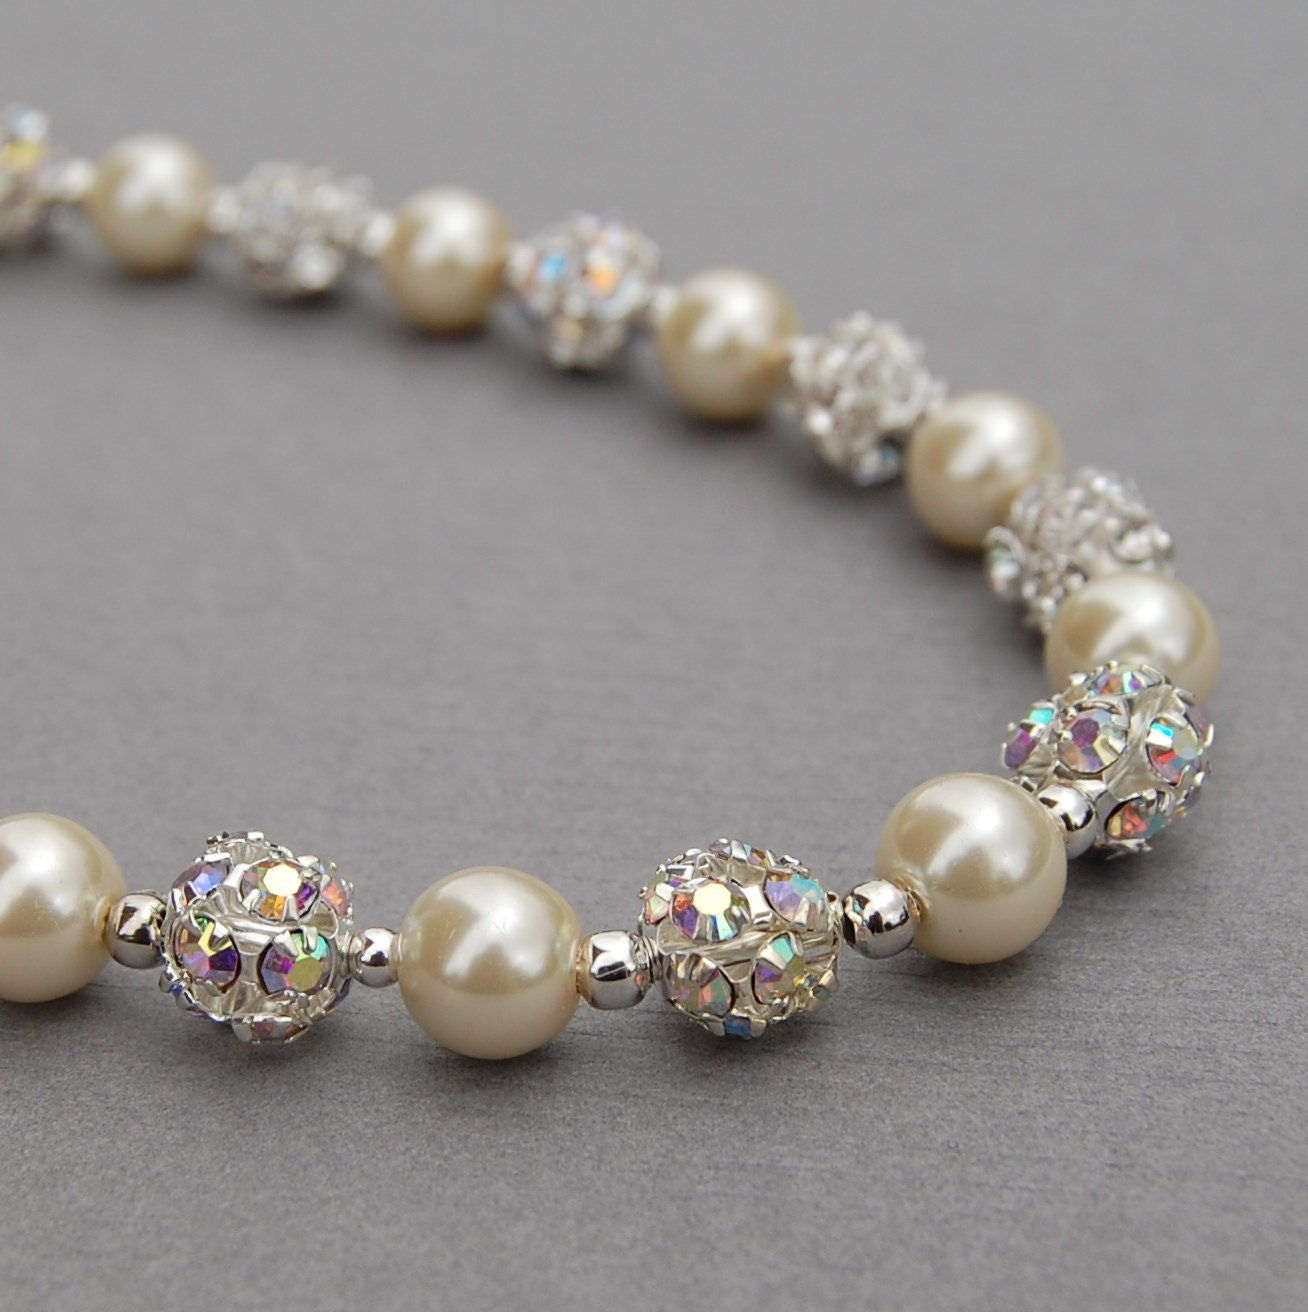 Necklace With A Pearl: Bridal Pearl Necklace Sparkling Ivory Pearl Necklace Wedding